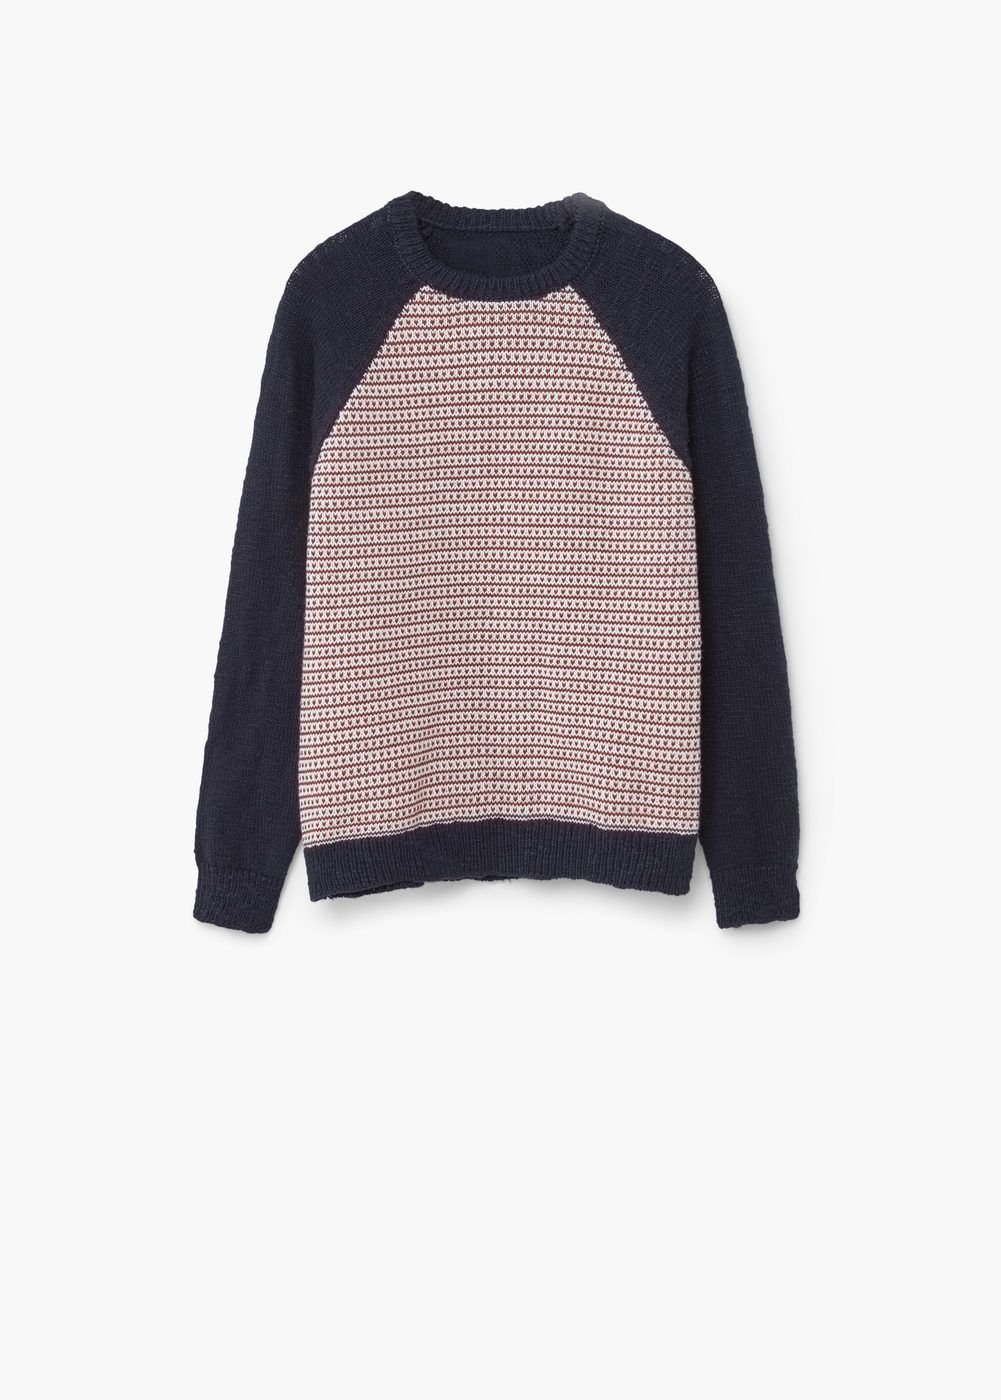 a70d3ae3a Elbow-patch cotton sweater